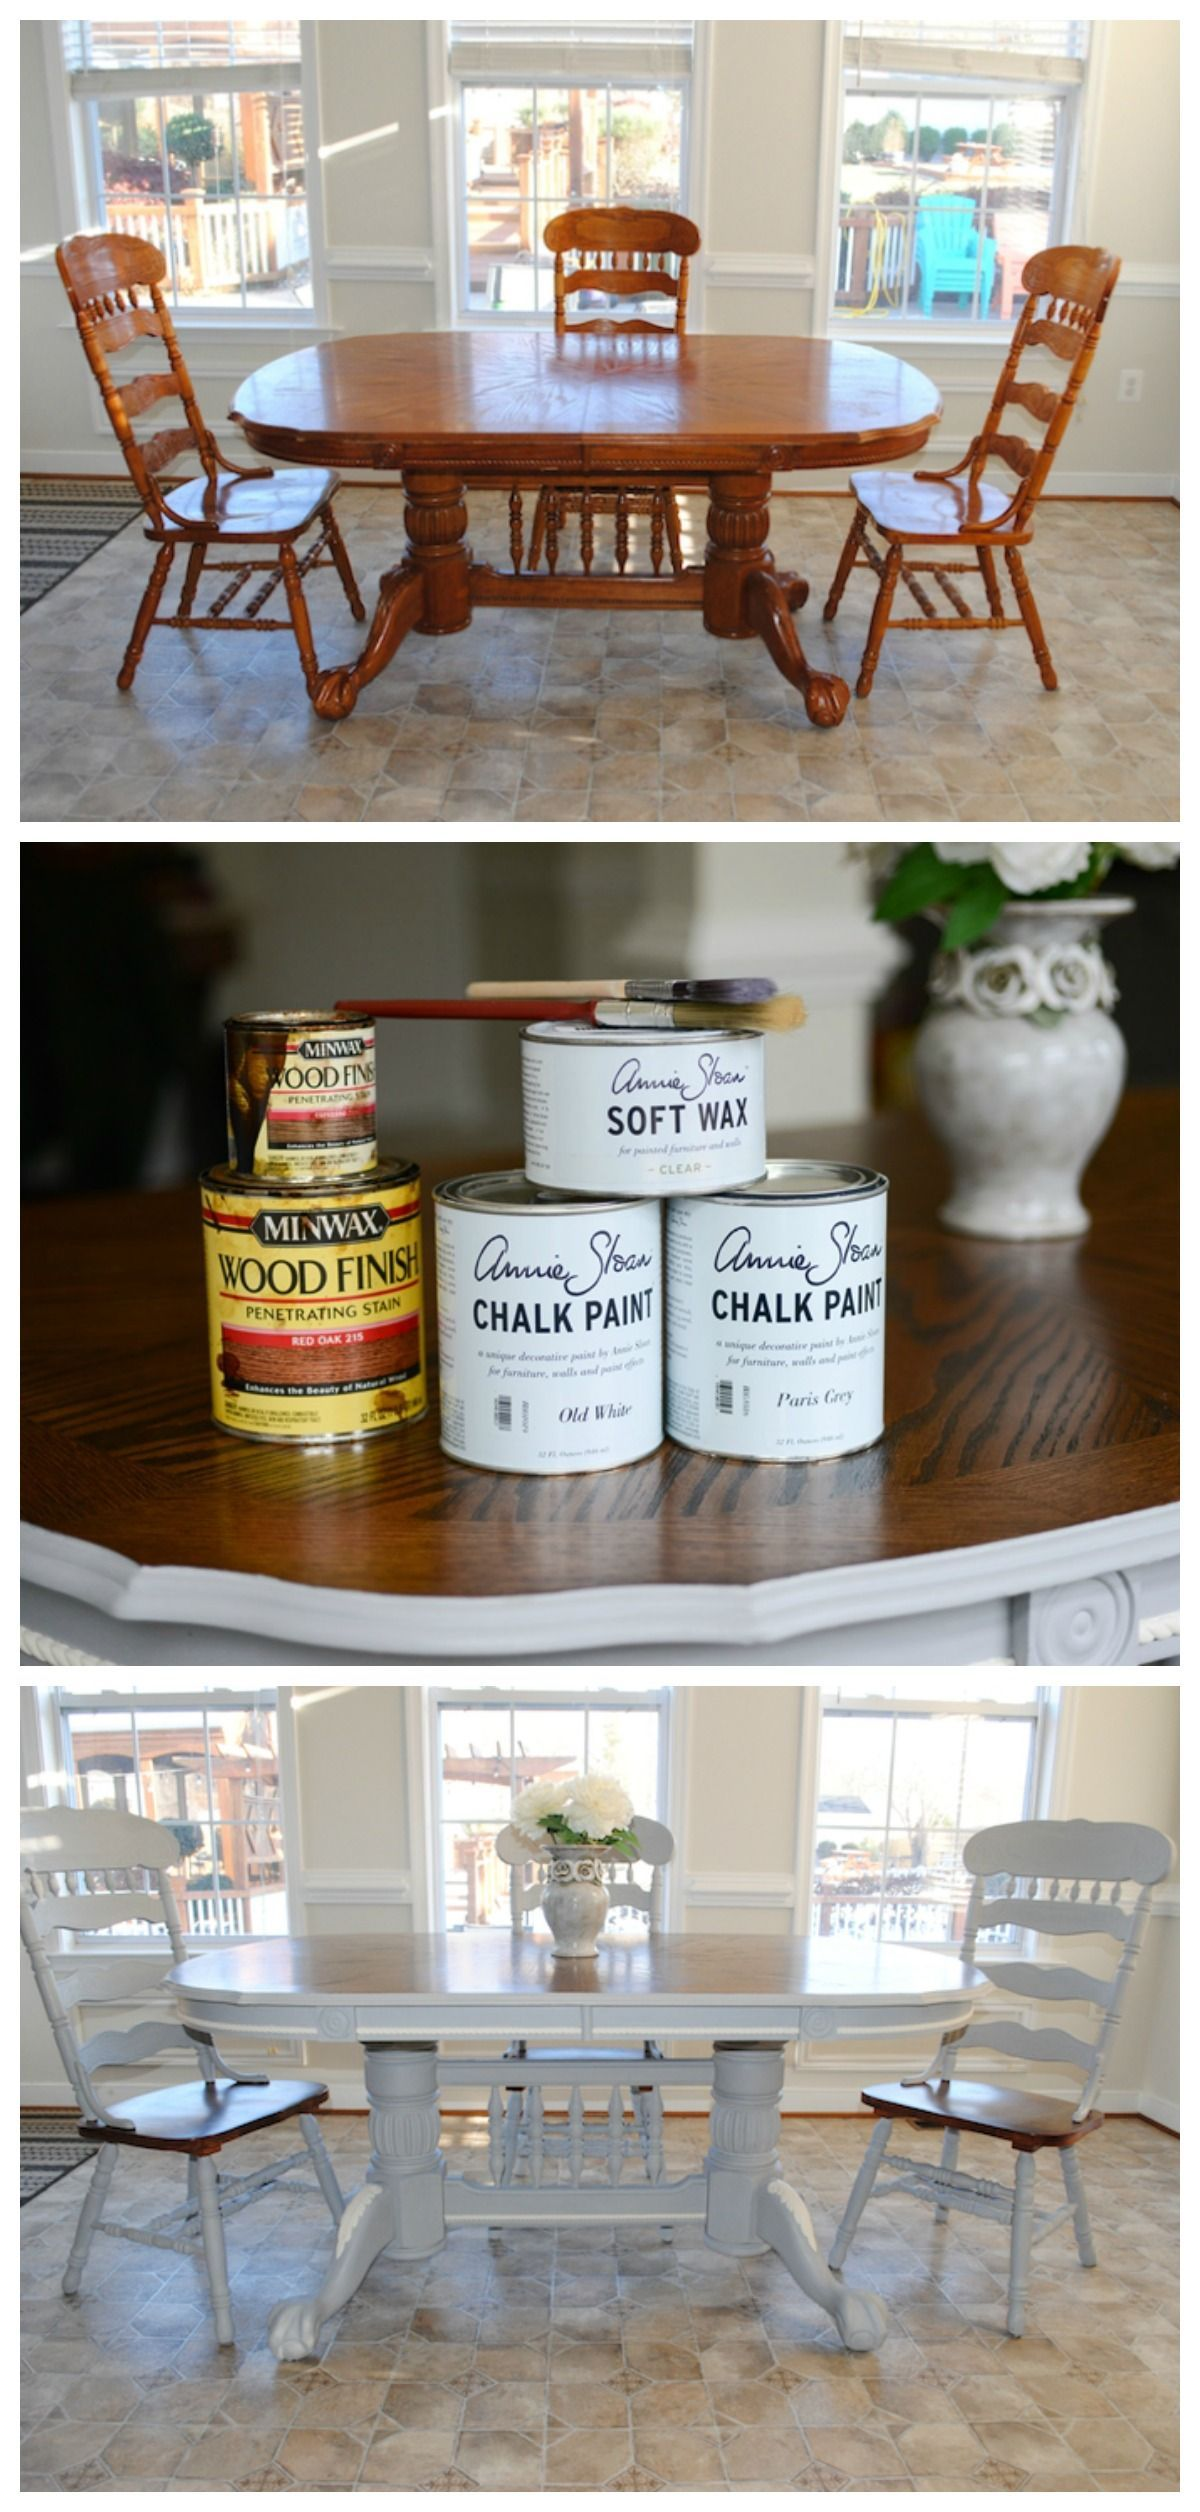 Before And After Dining Room Table Makeover With Annie Sloan Chalk Paint And Stain Ref Dining Table Makeover Kitchen Table Makeover Dining Room Table Makeover